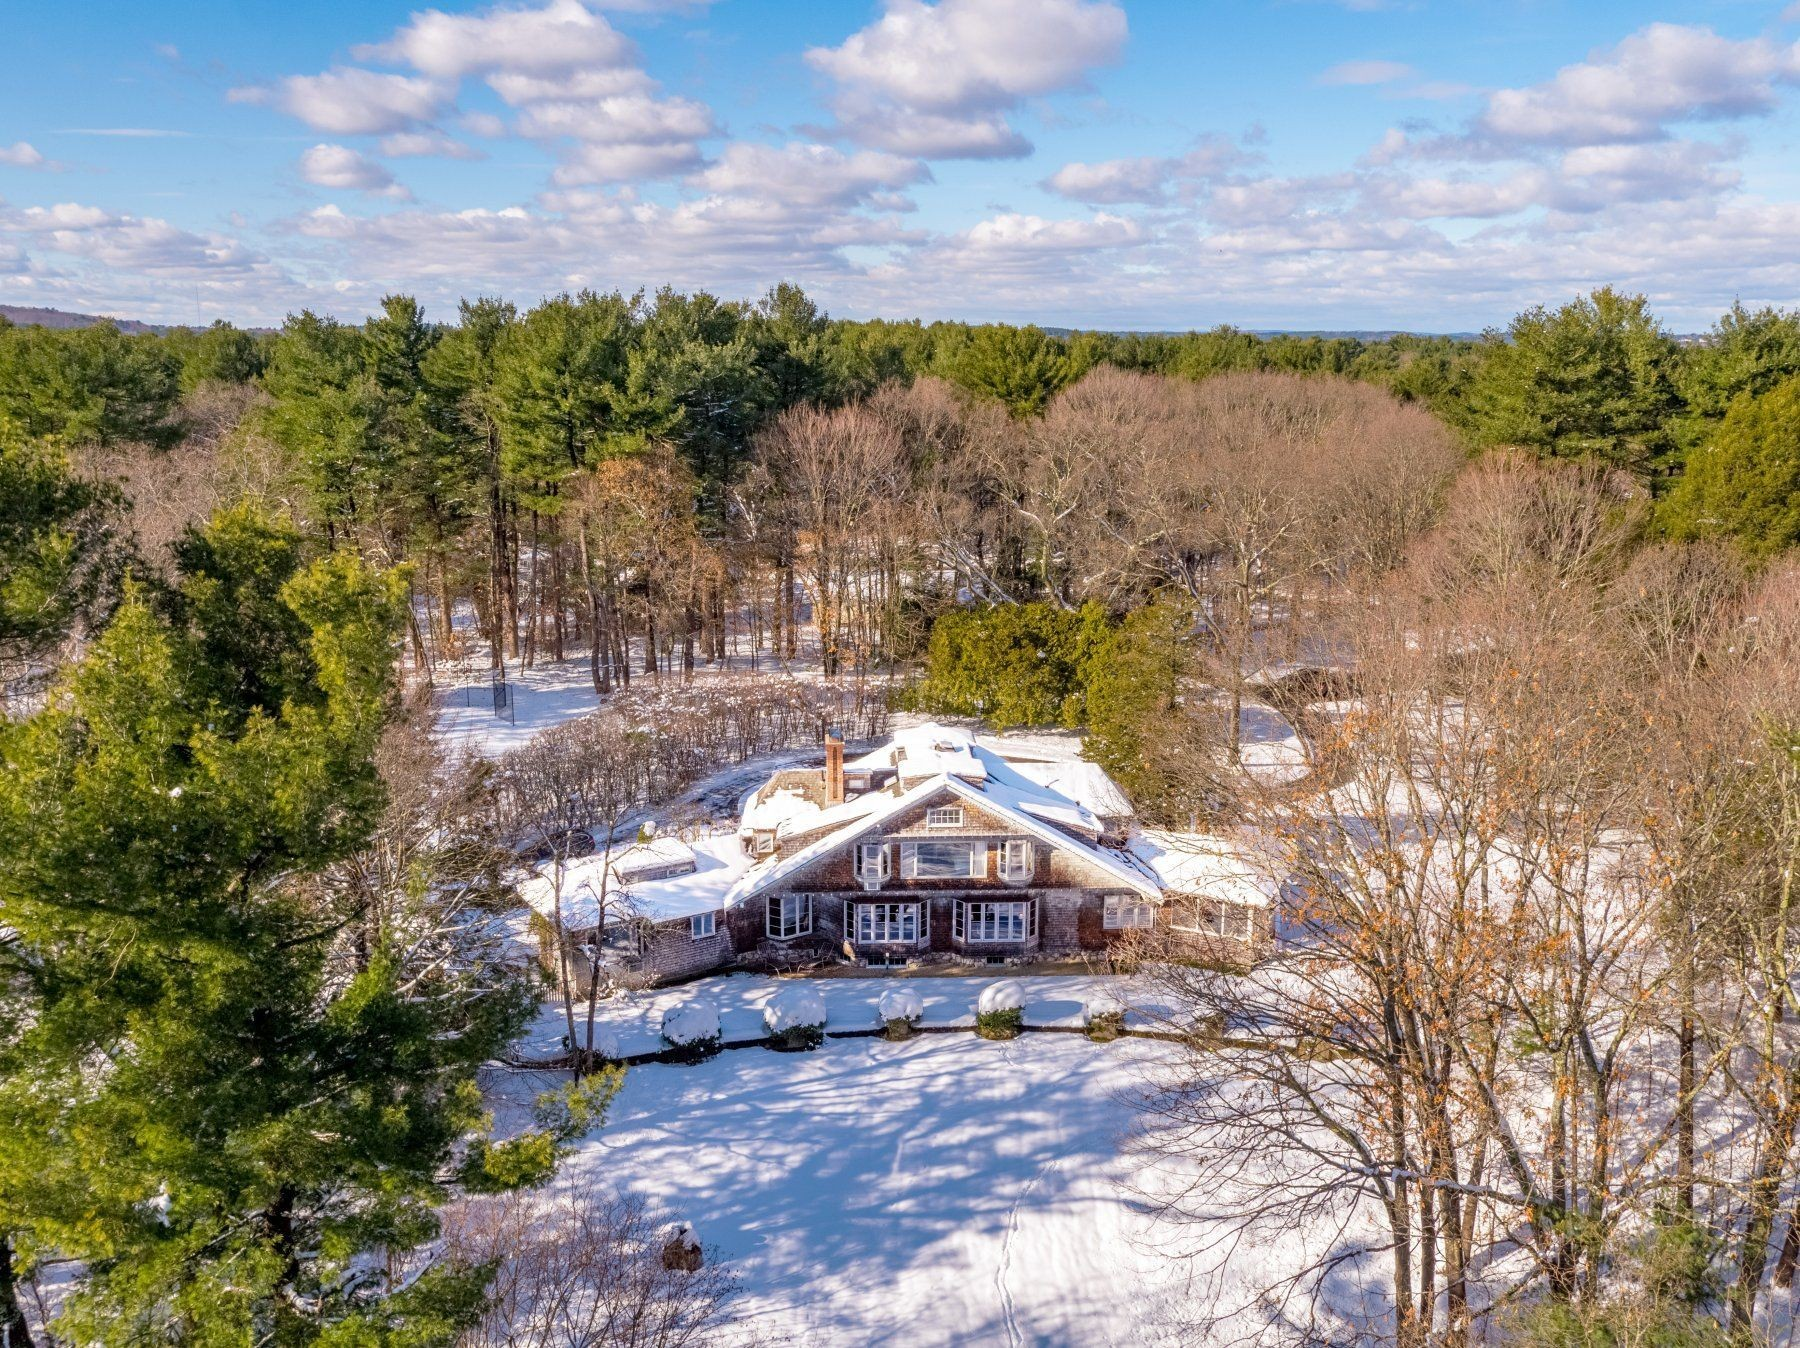 myrtle hill a luxury single family home for sale in wayland, massachusetts property id 416483932 christie s international real estate